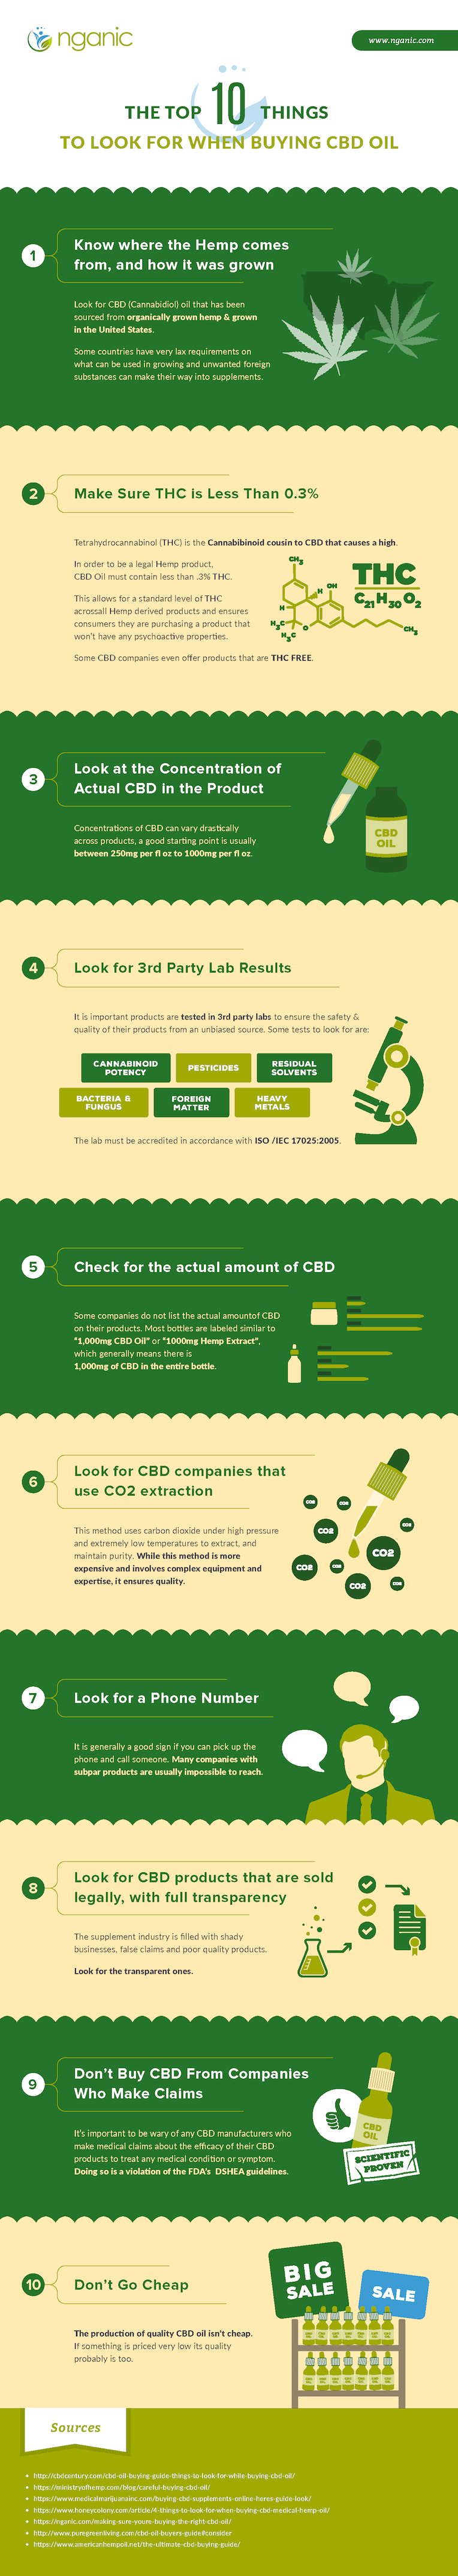 Top 10 things to look for when buying CBD Oil